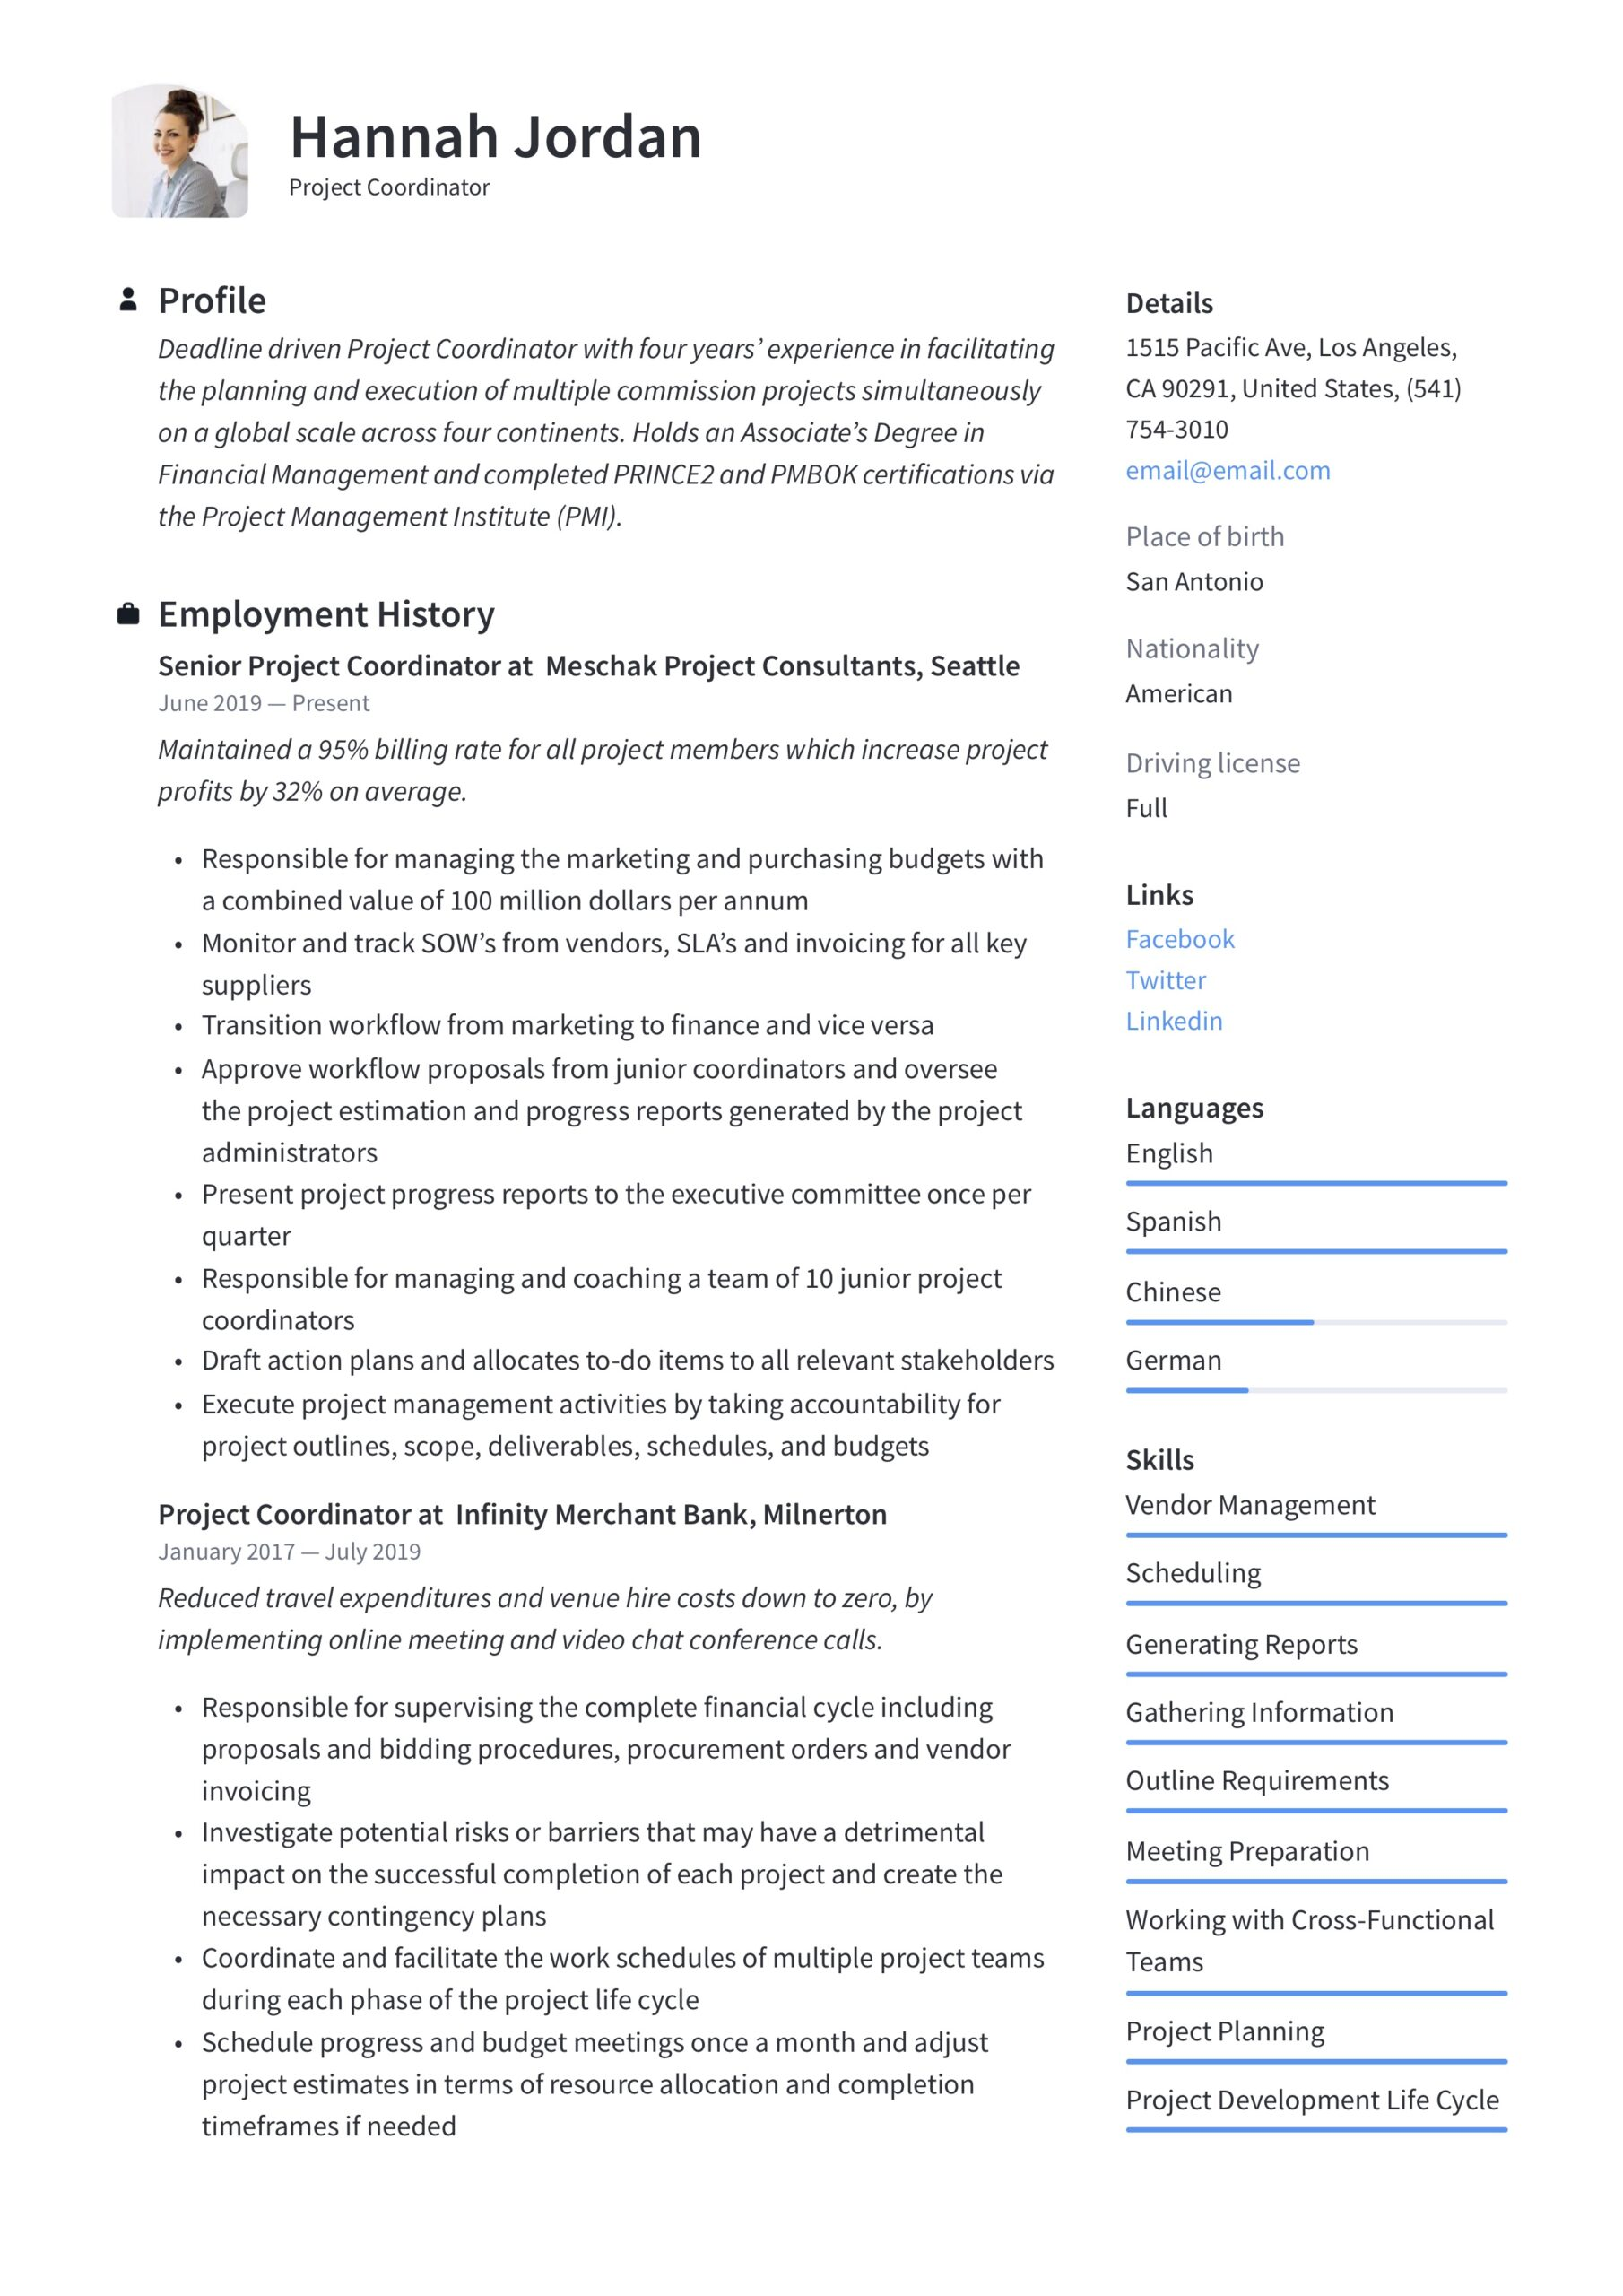 project coordinator resume writing guide examples job employment agency best free Resume Project Coordinator Job Resume